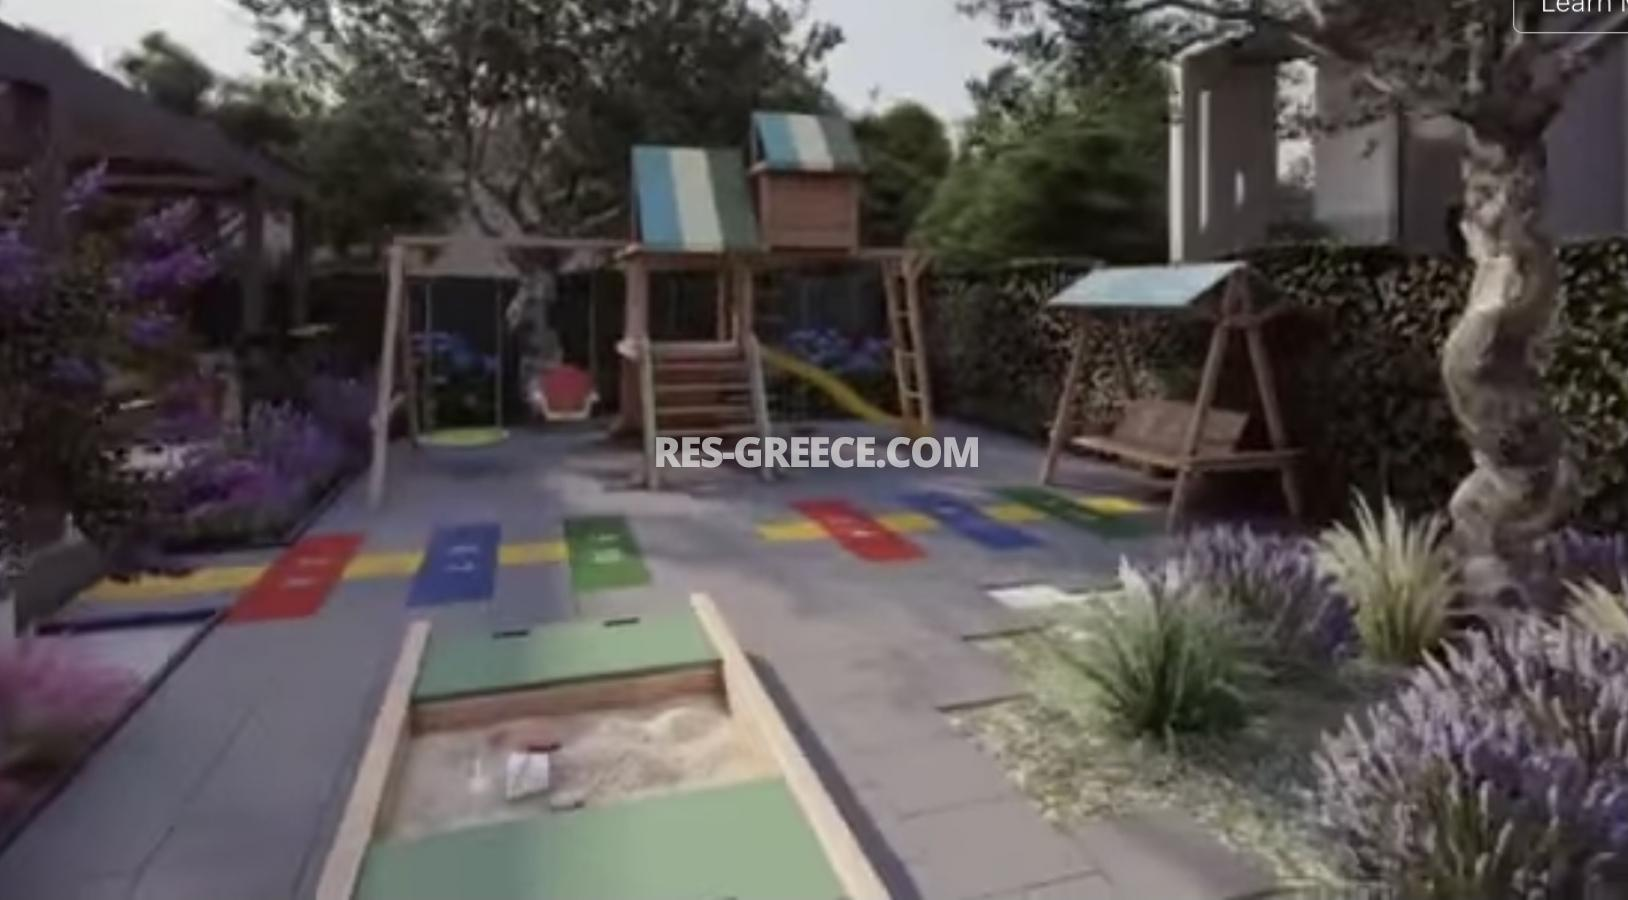 Anasa apartments, Halkidiki-Sithonia, Greece - apartments in a new complex with pool - Photo 6